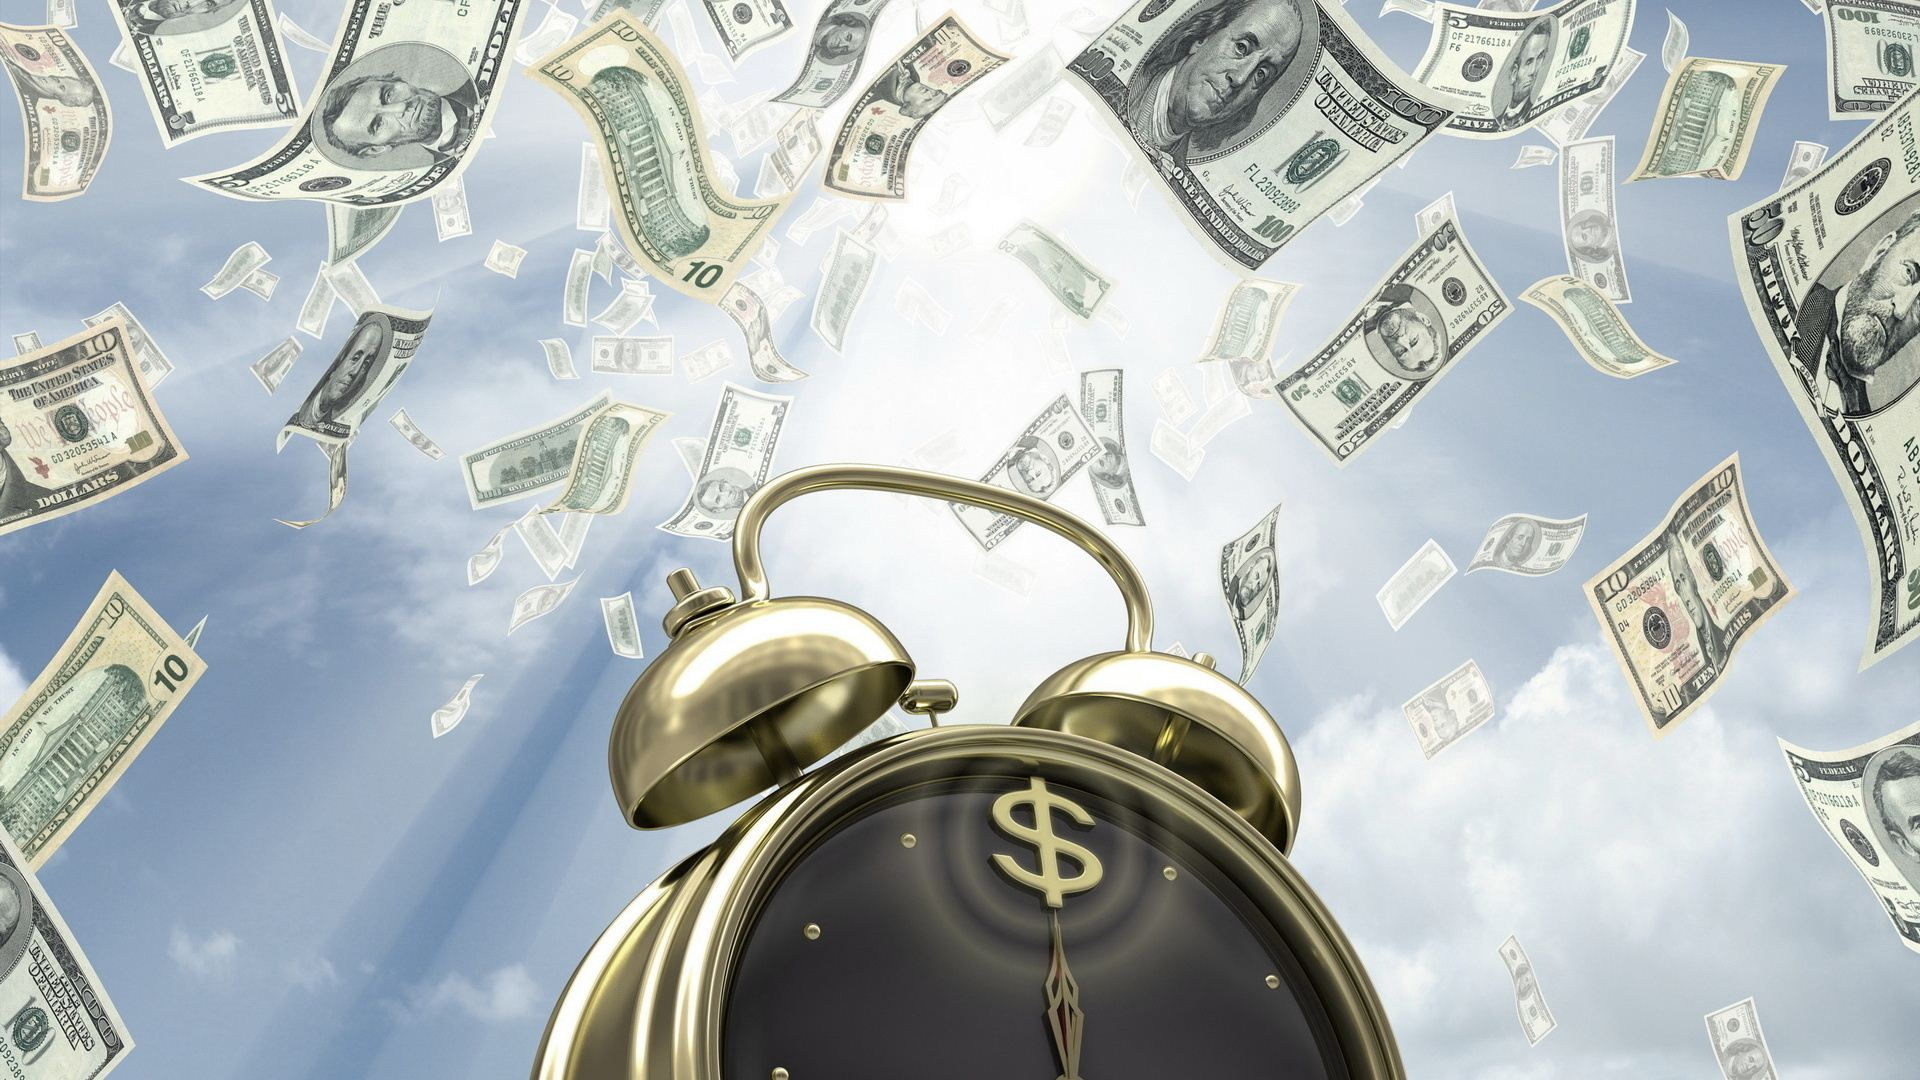 Law-of-Attraction-–-Manifest-Money-with-minutes-of-MP-Audio-Tracks-wallpaper-wp3408002